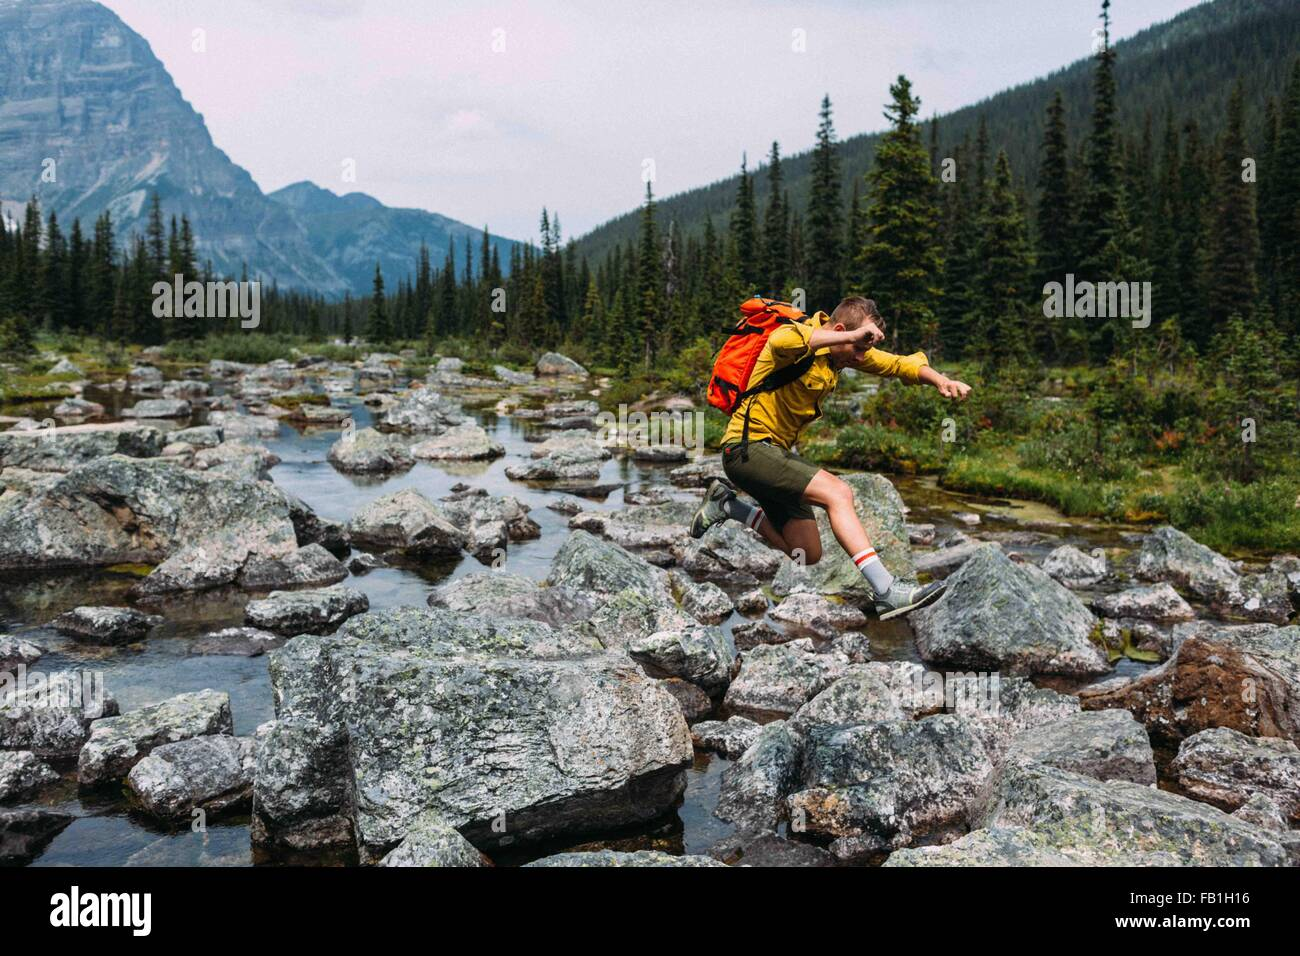 Side view of mid adult man carrying backpack jumping over rocky riverbed, Moraine lake, Banff National Park, Alberta - Stock Image